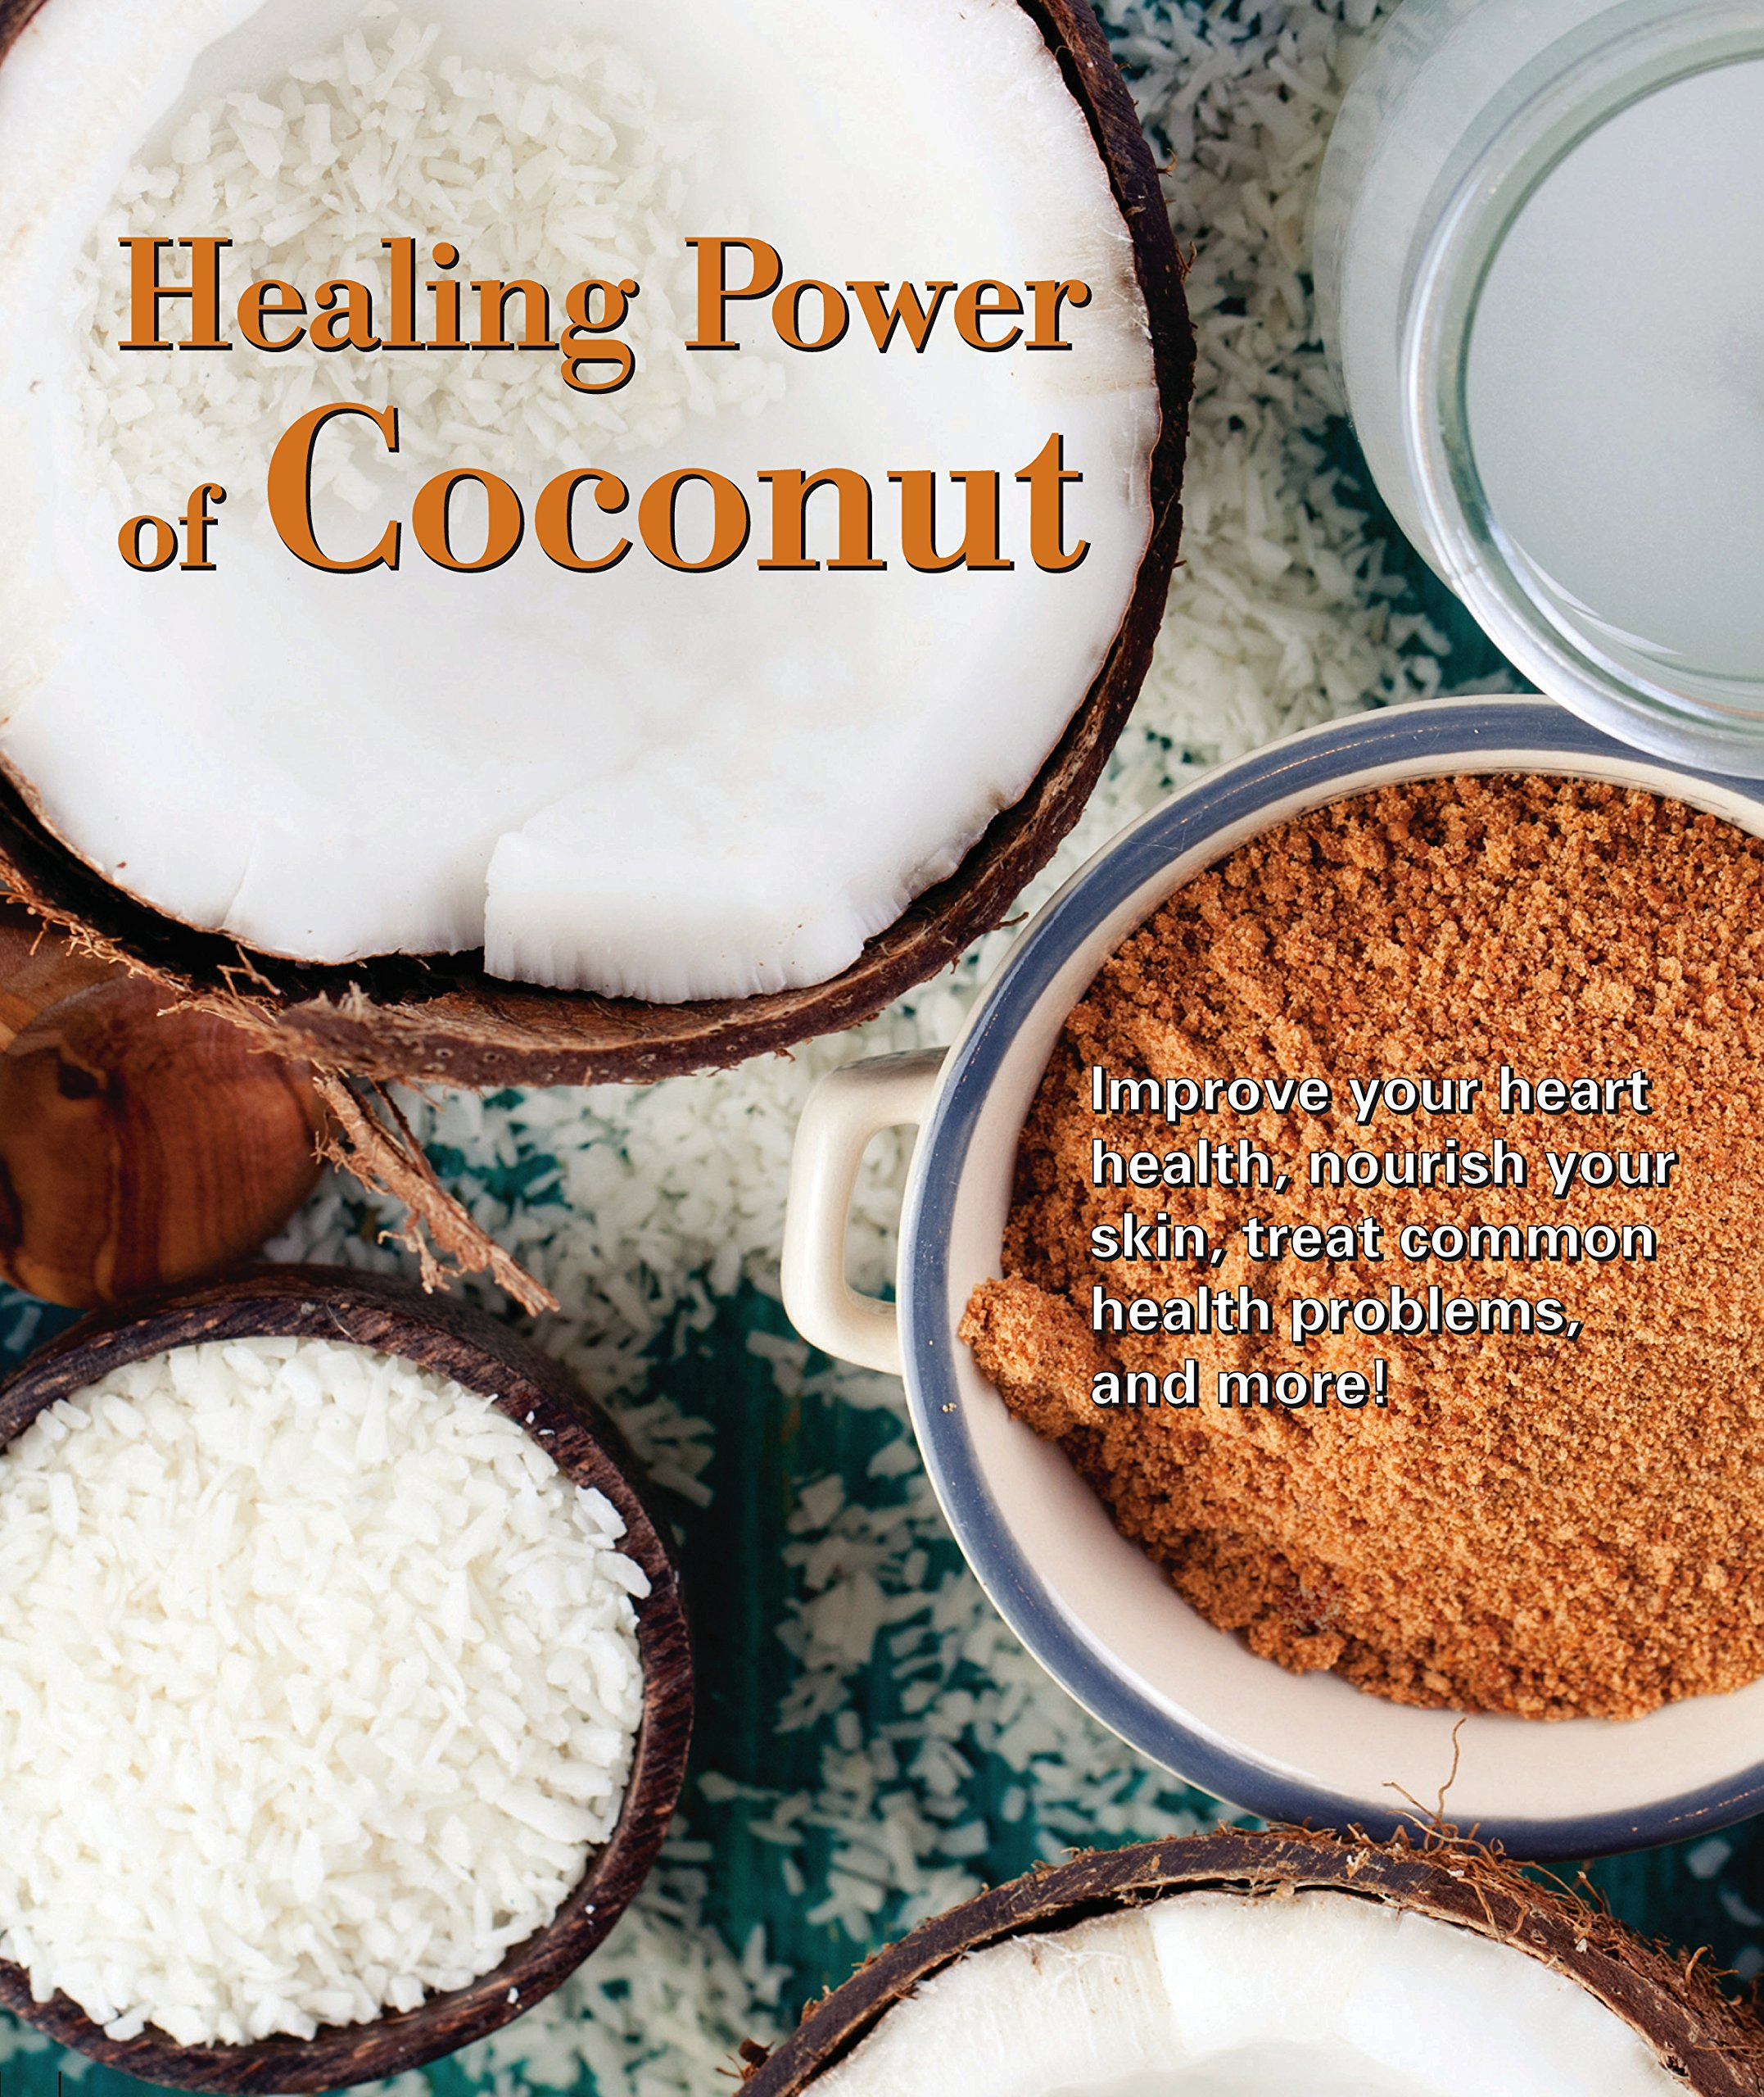 Healing Power of Coconut: Improve Your Heart Health, Nourish Your Skin, Treat Common Health Problems, and More! PDF